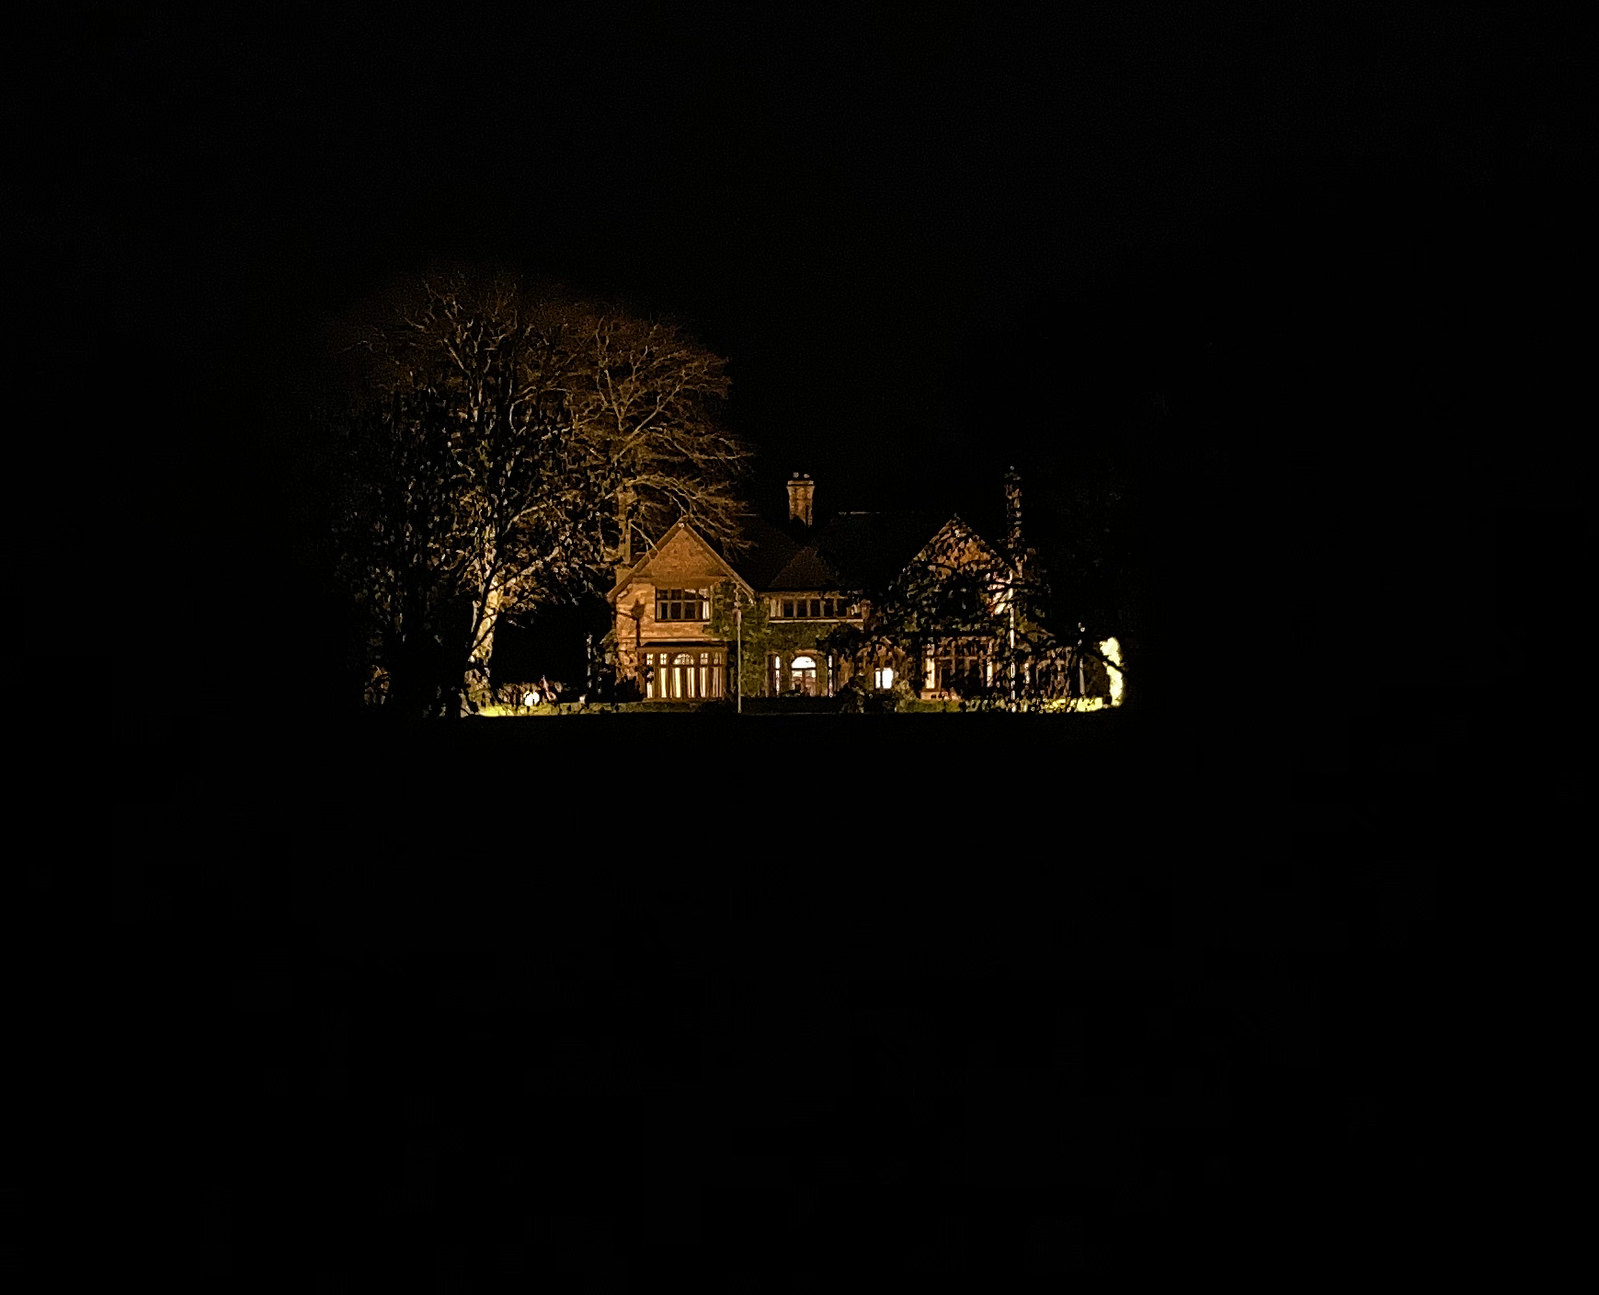 Ghost house on Shillingford Hill